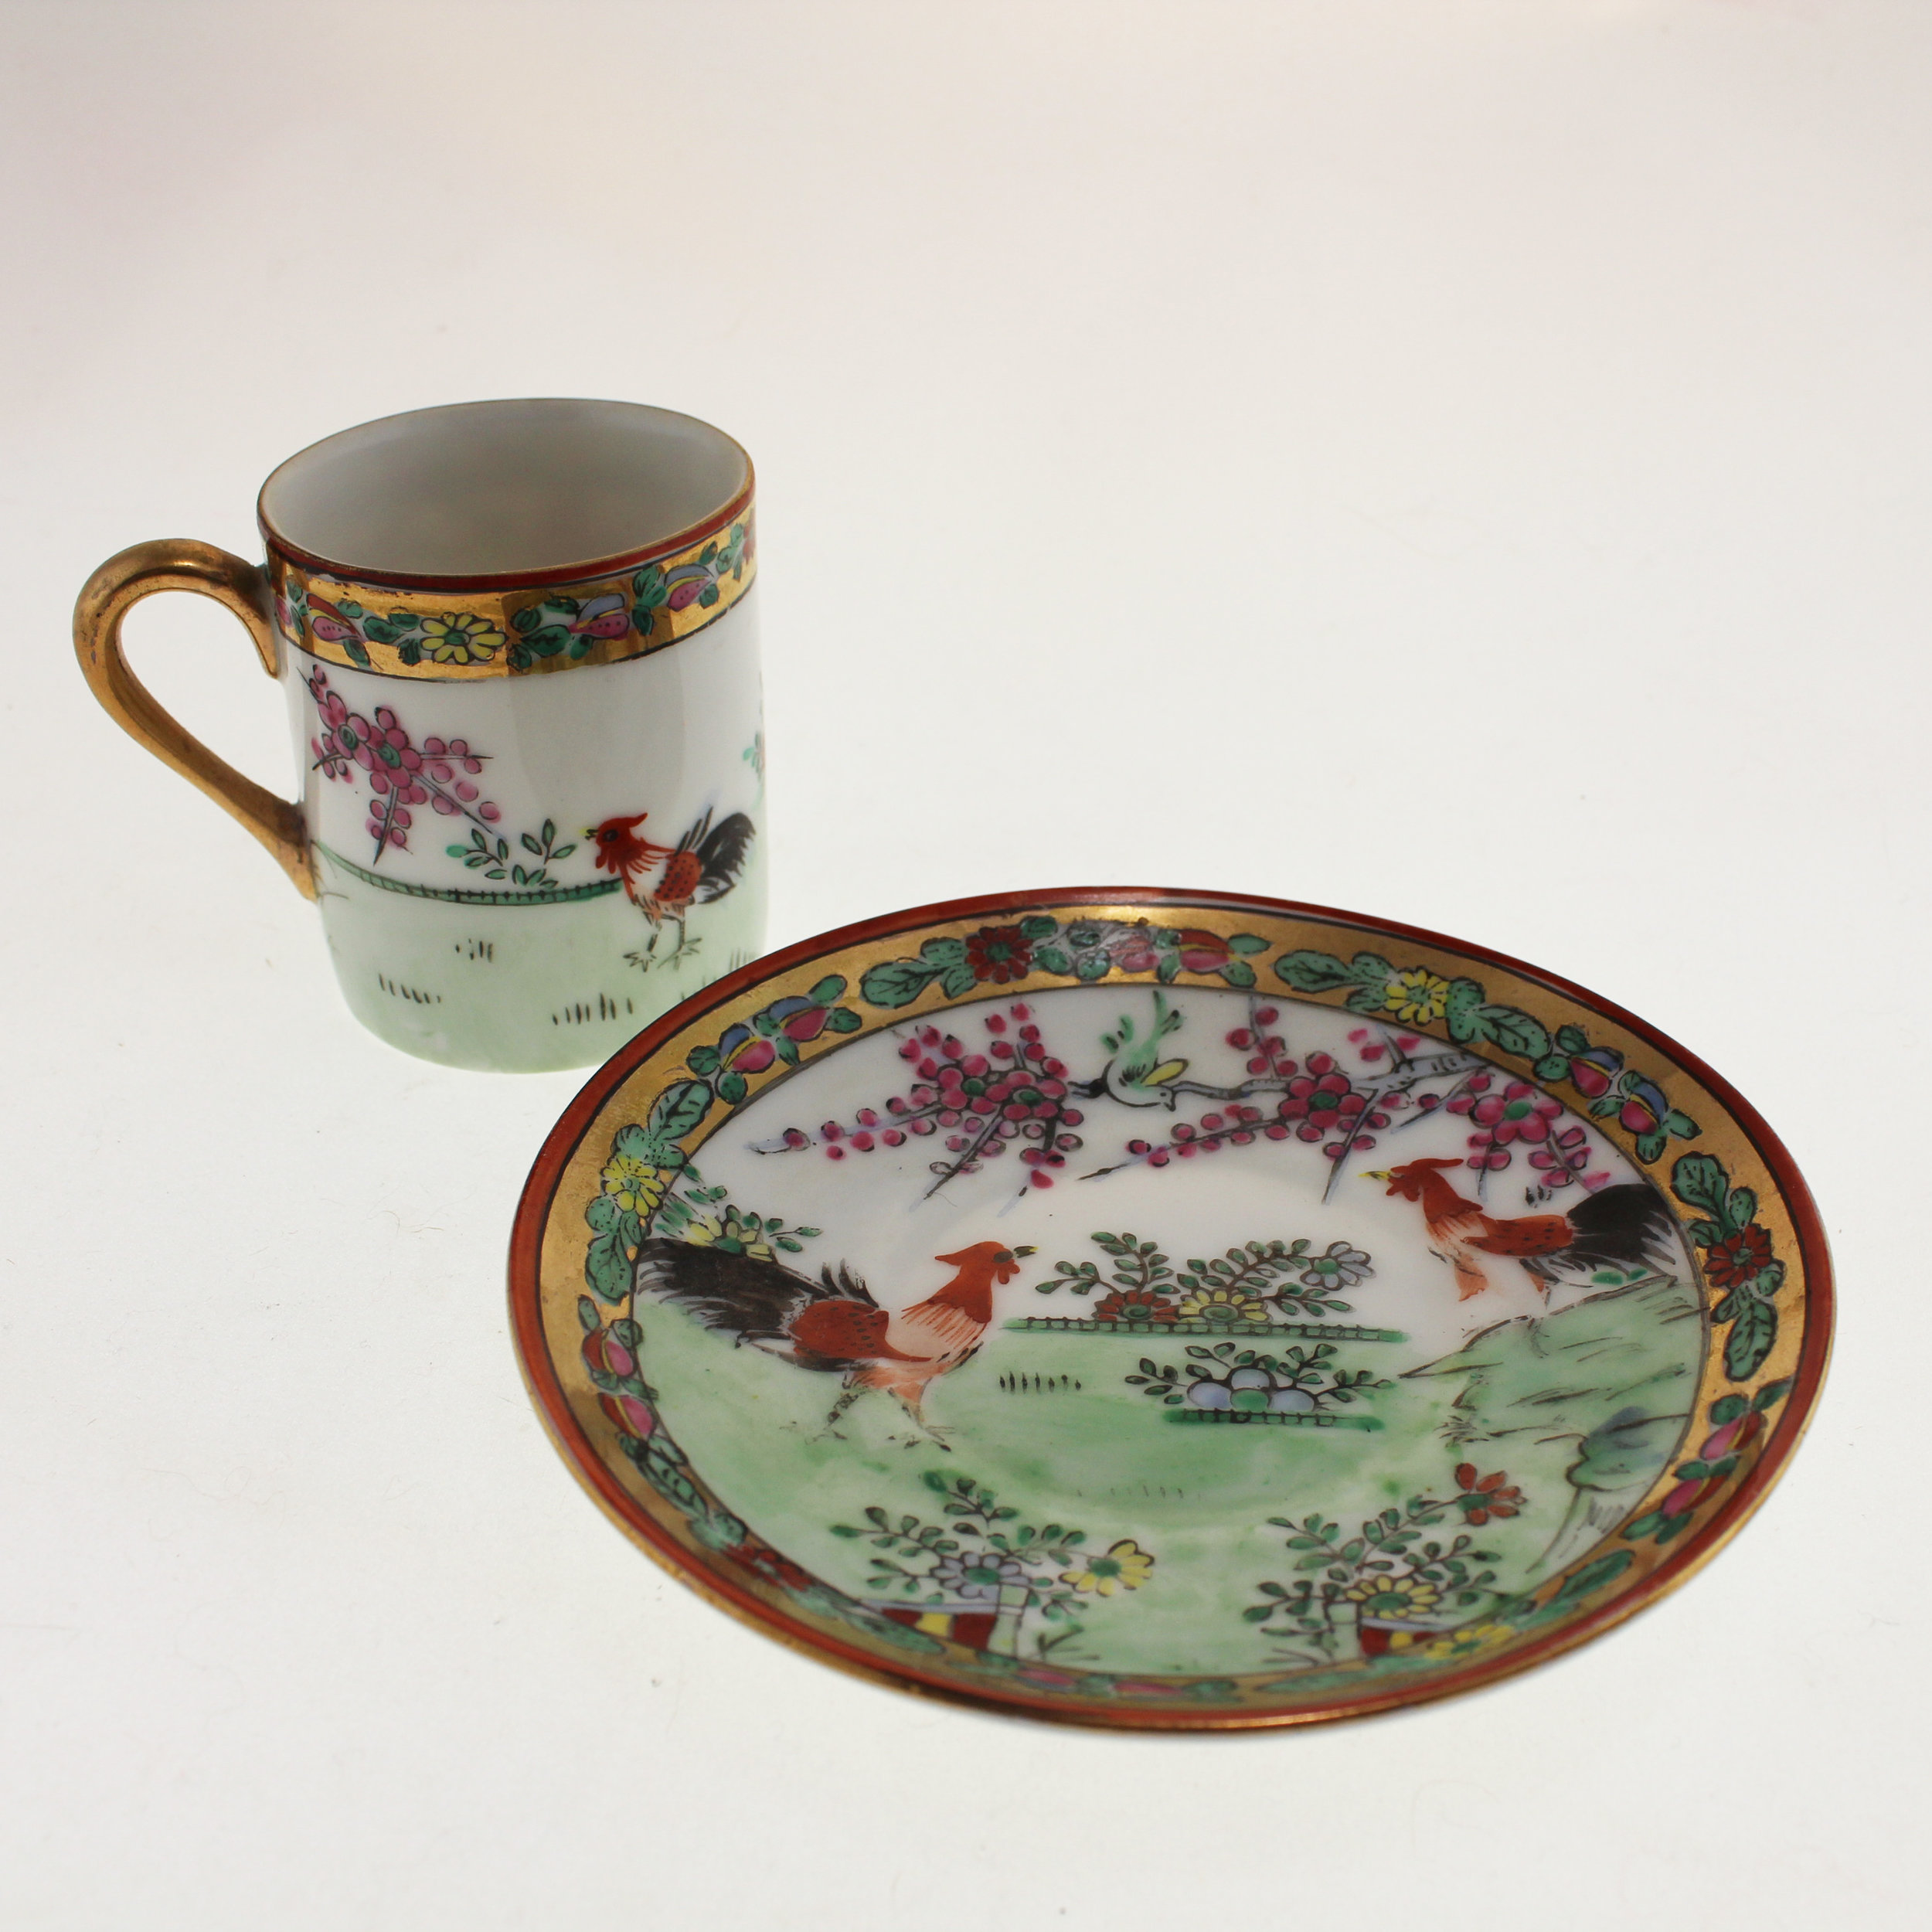 Gilded antique handpainted rooster teacup and saucer